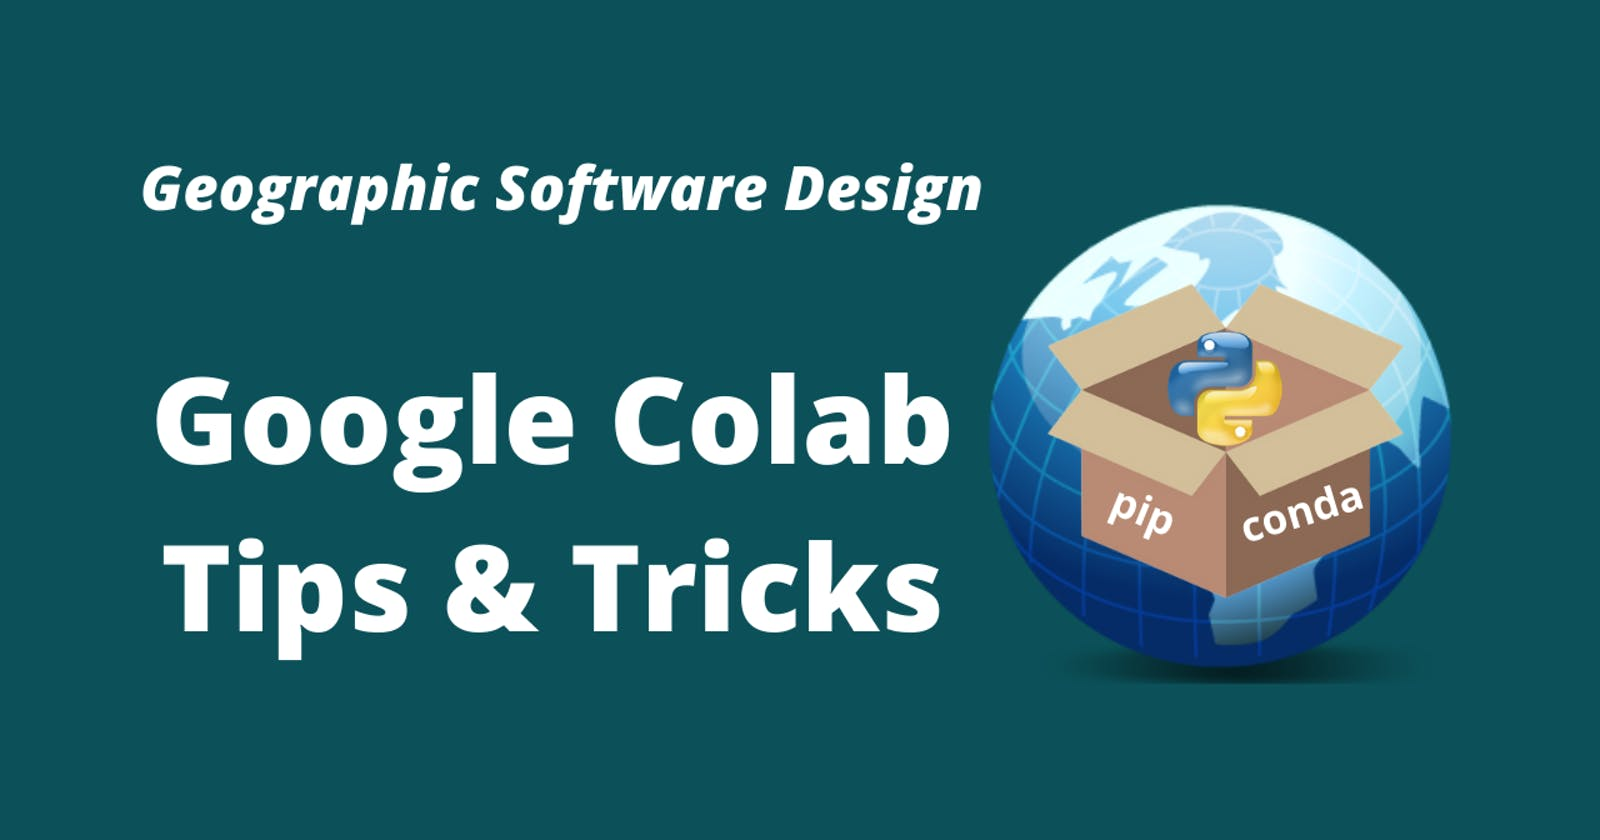 Google Colab Tips and Tricks